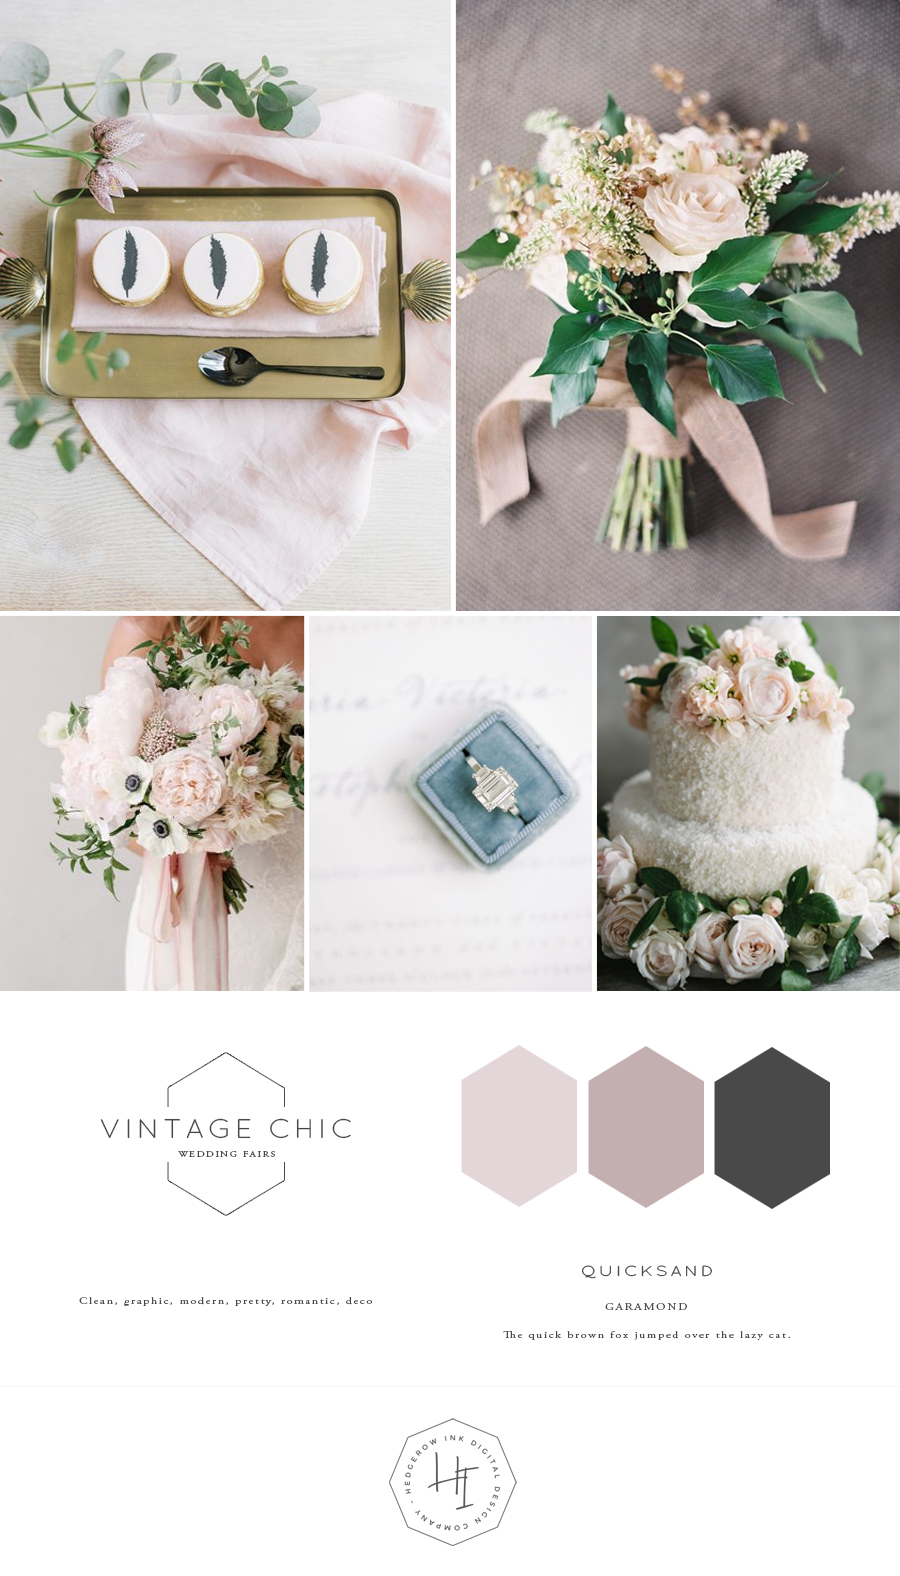 Vintage Chic mood board